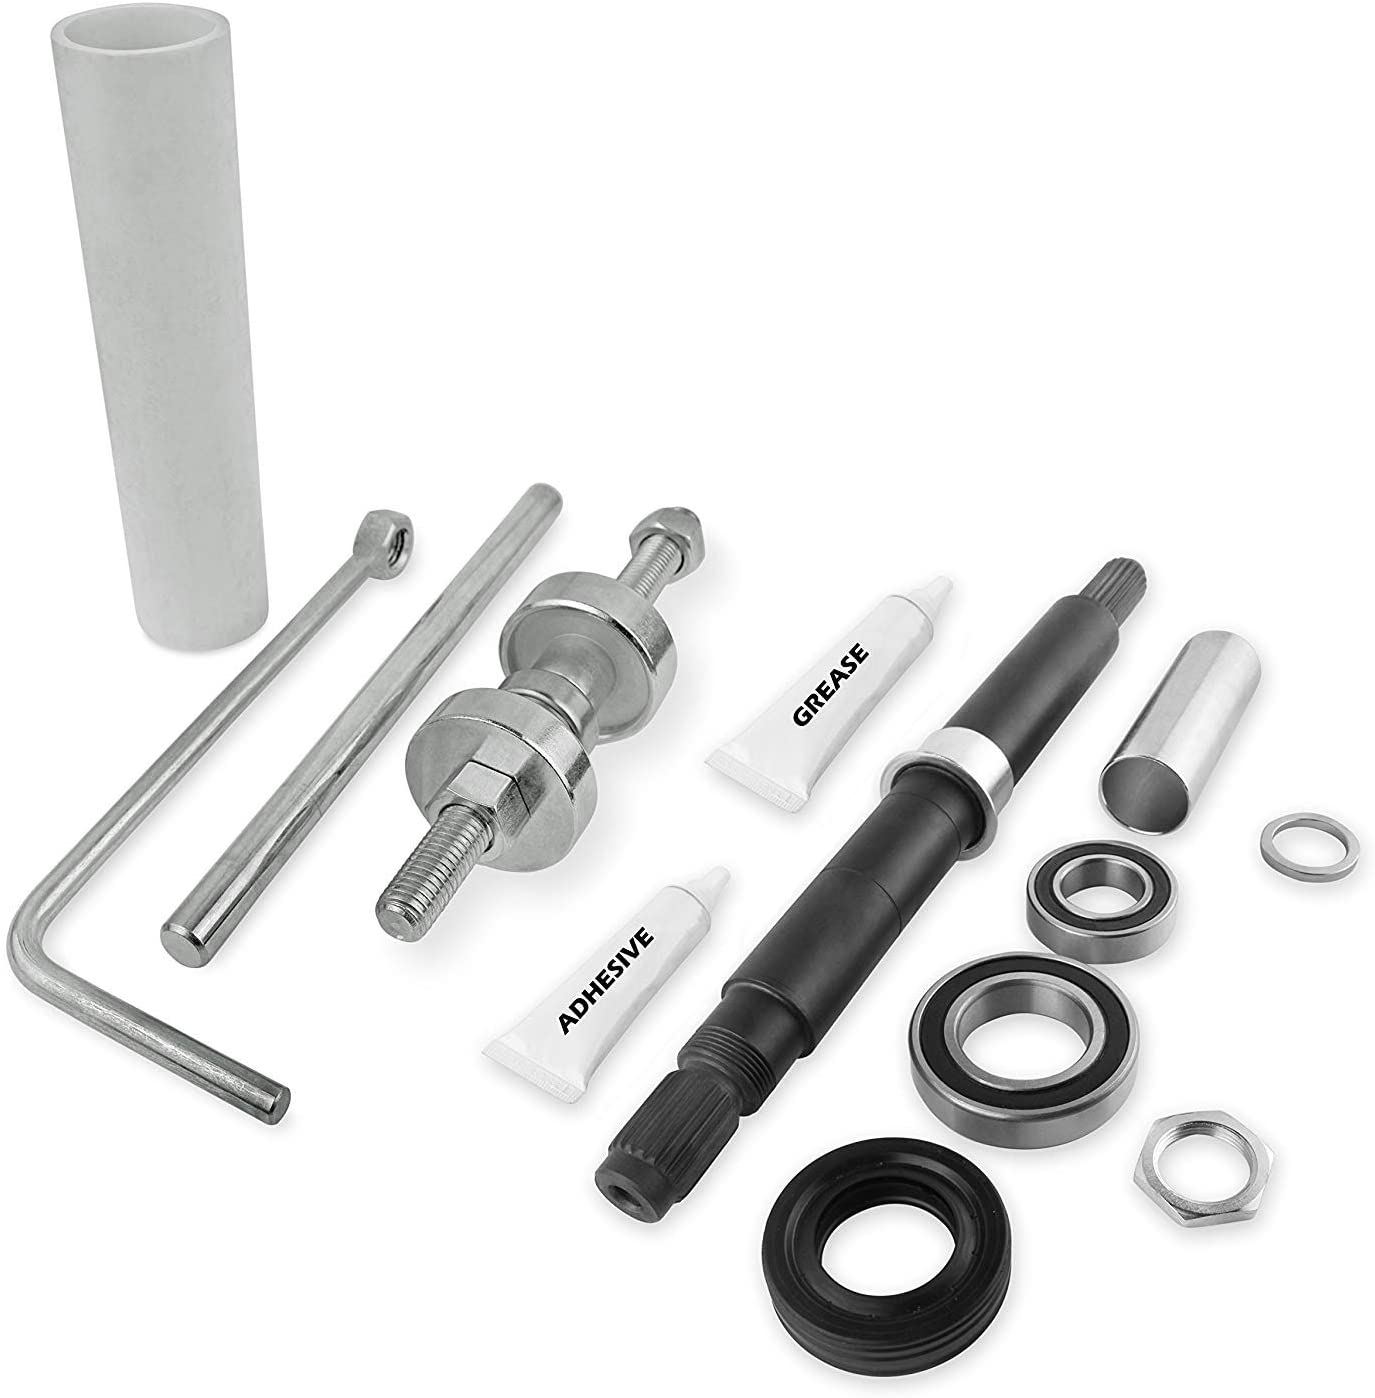 NEW W10447783 Tool Kit and W10435302 Bearing Assembly, COMPLETE PACKAGE, 2119011, W10435274, W10435285